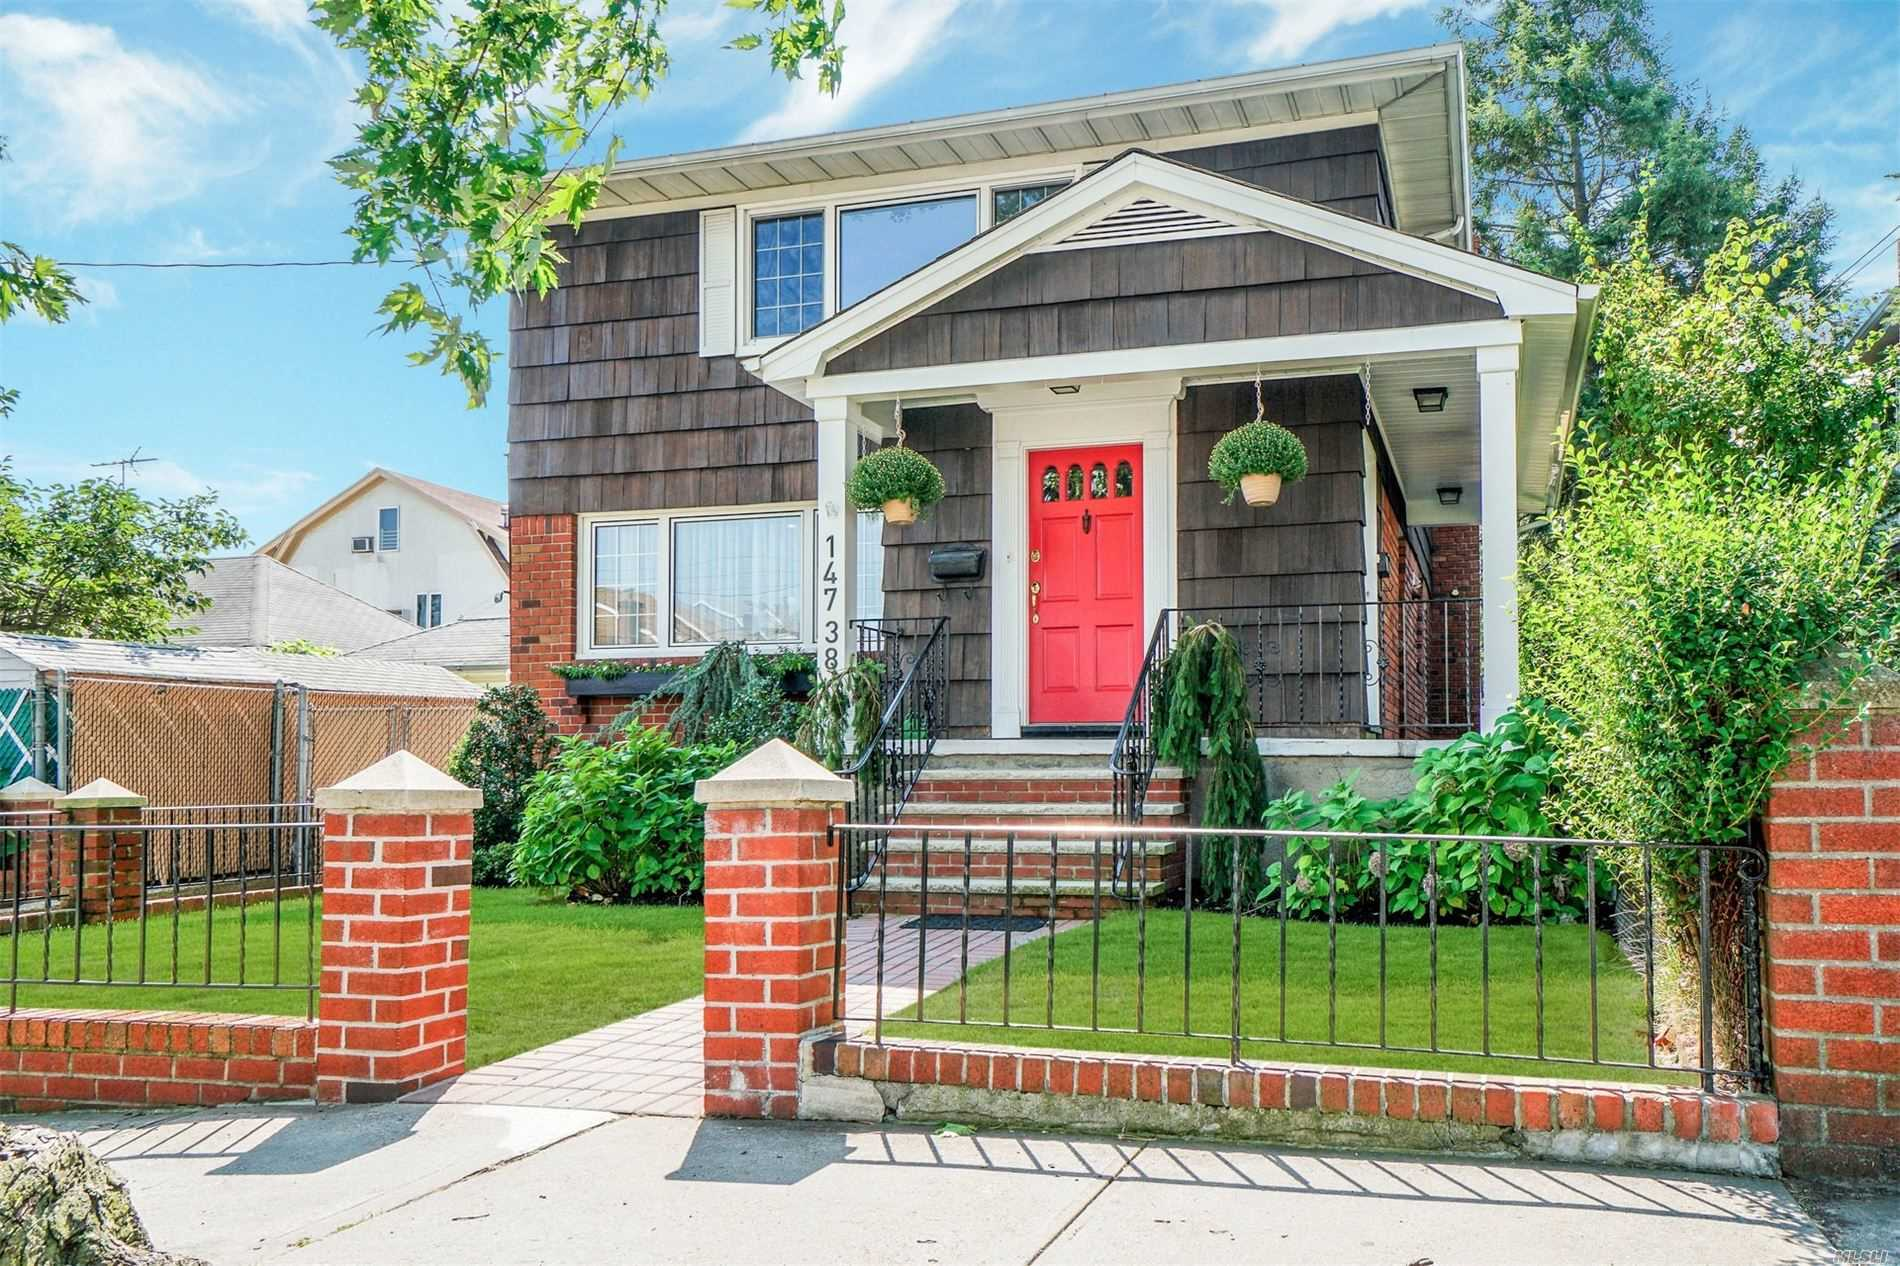 Totally renovated legal 2 family with 5 bedrooms, 4 baths Main floor is 3 bedrooms, 2 full baths Second floor is 2 bedrooms, 1 full bath Full height basement with OSE This home is a must see! All new kitchens and baths, gorgeous cabinetry, refinished floors, oversized rooms, huge high ceiling finished basement with bath, OSE. state of the art Buderos gas heating system, front porch, rear large deck, gorgeous yard, pool. fenced property, oversized garage. closets galore! cedar closet.